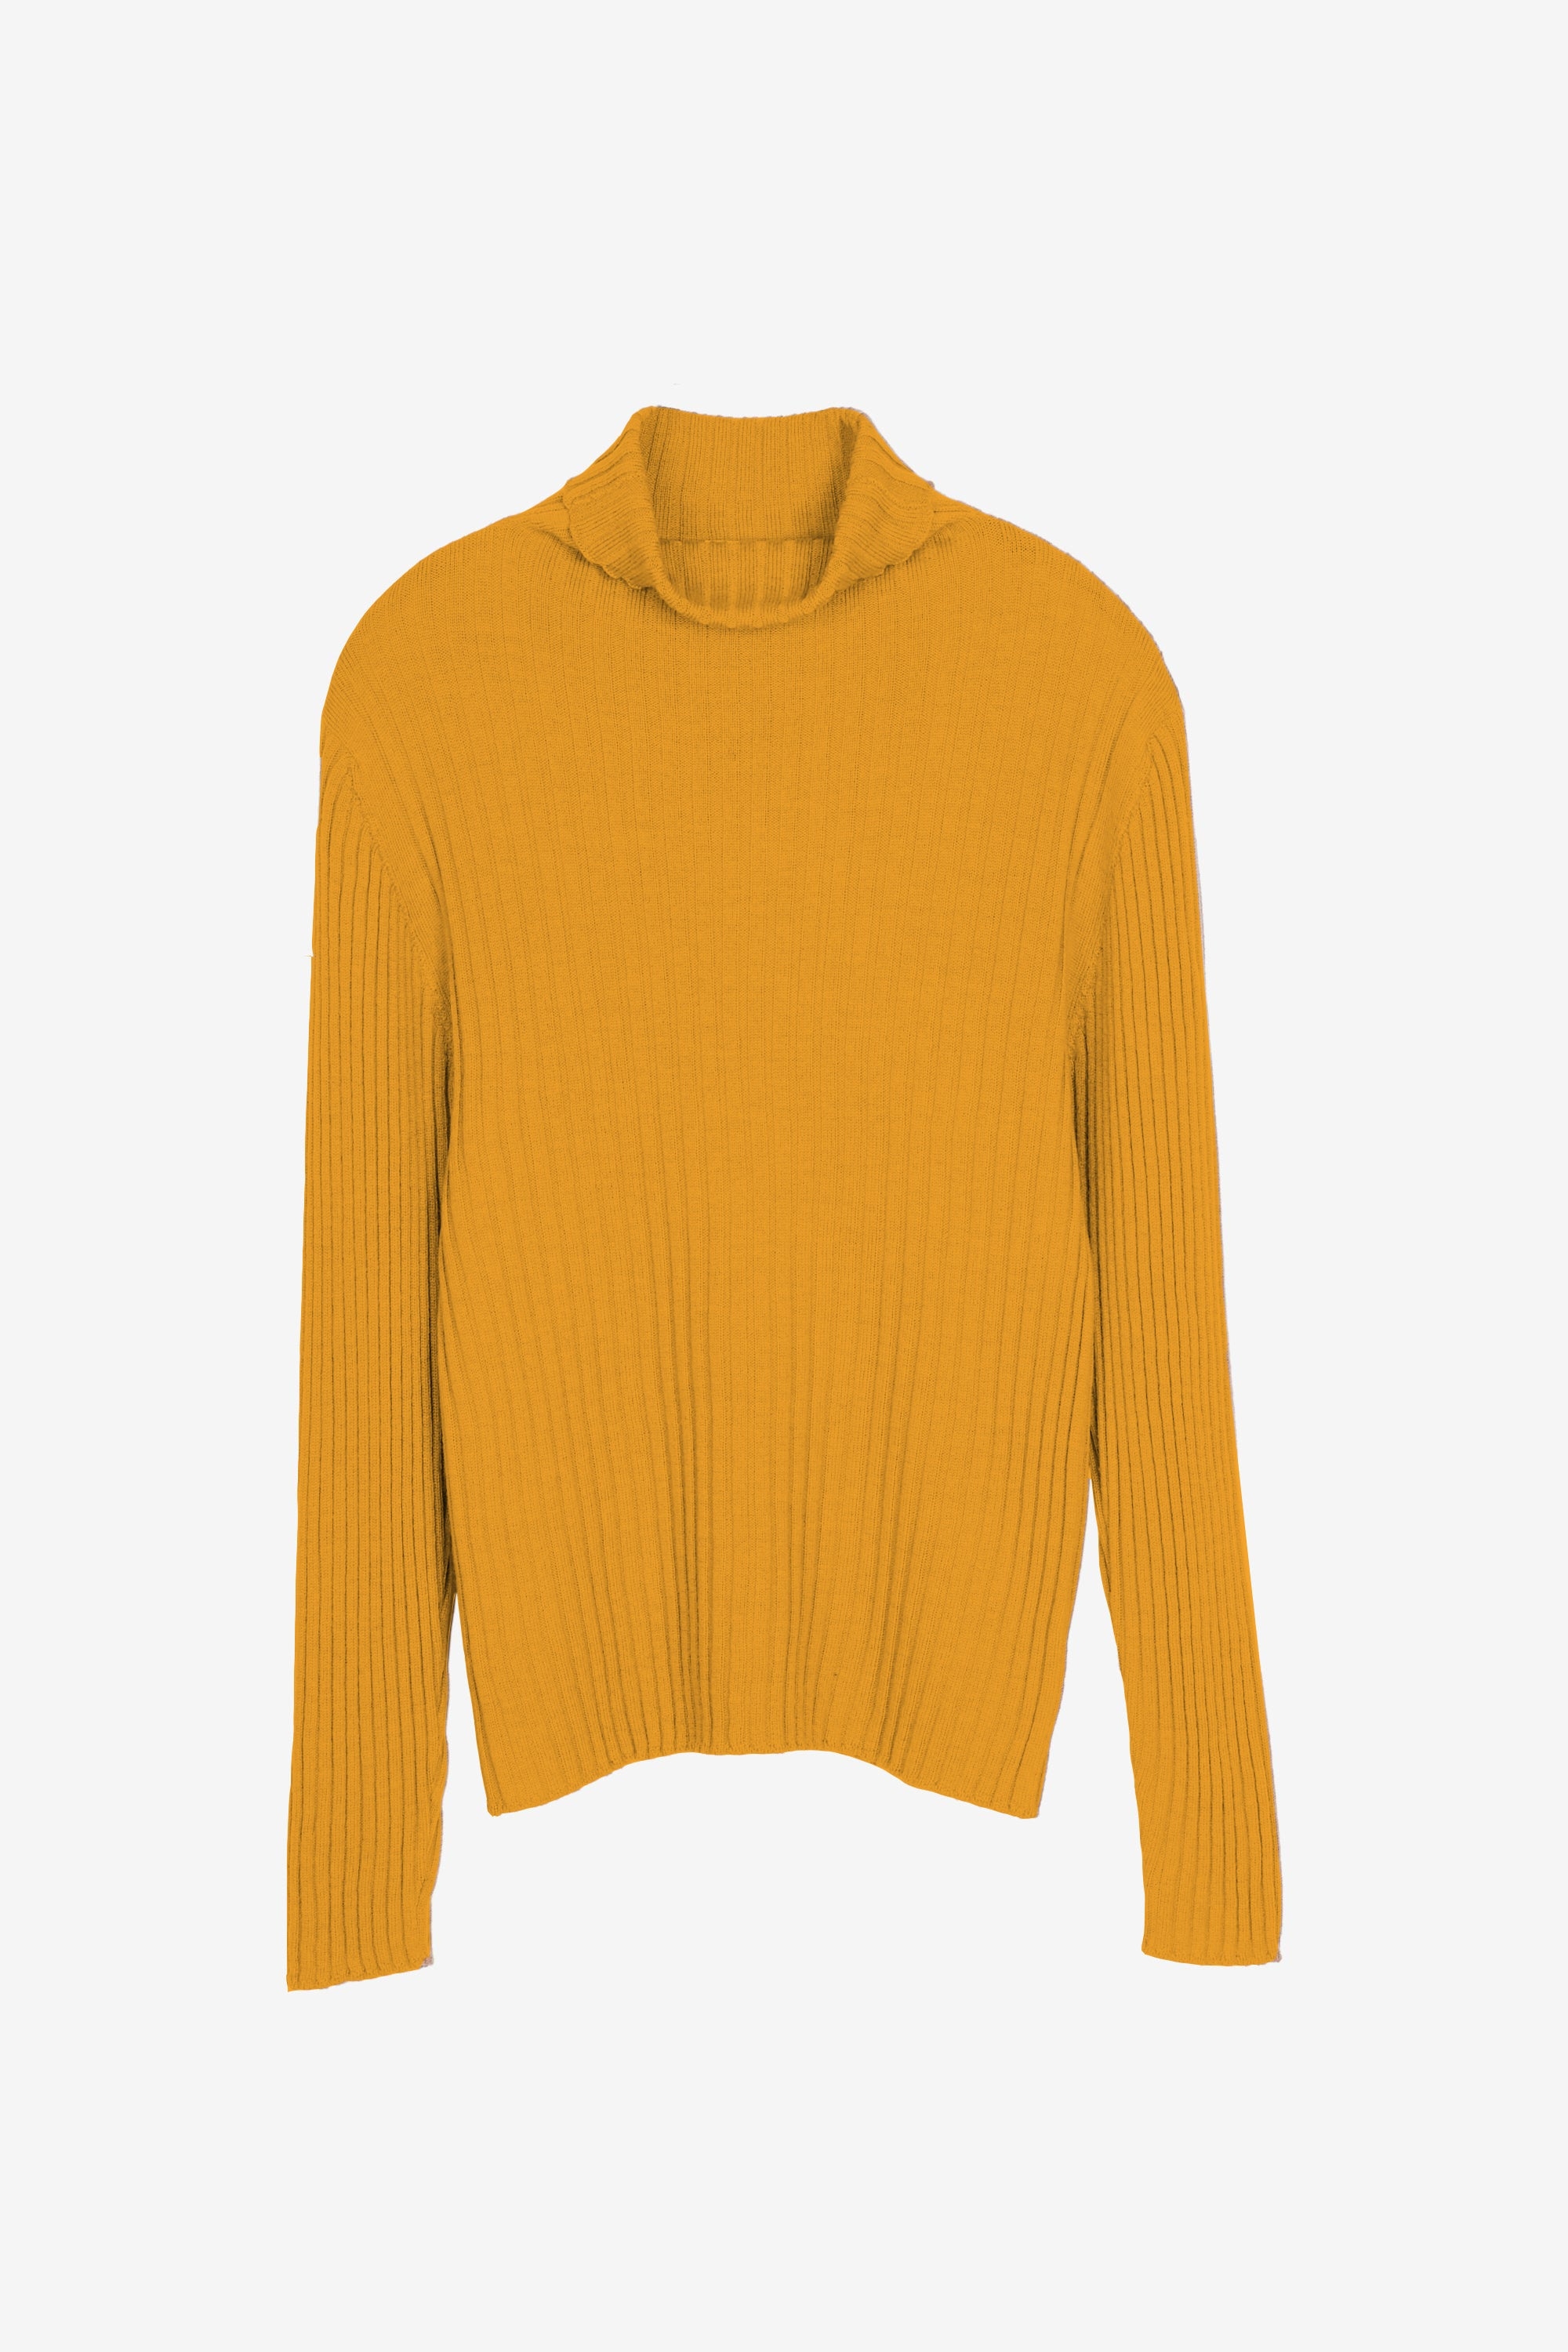 Bice merino turtleneck in ochre yellow